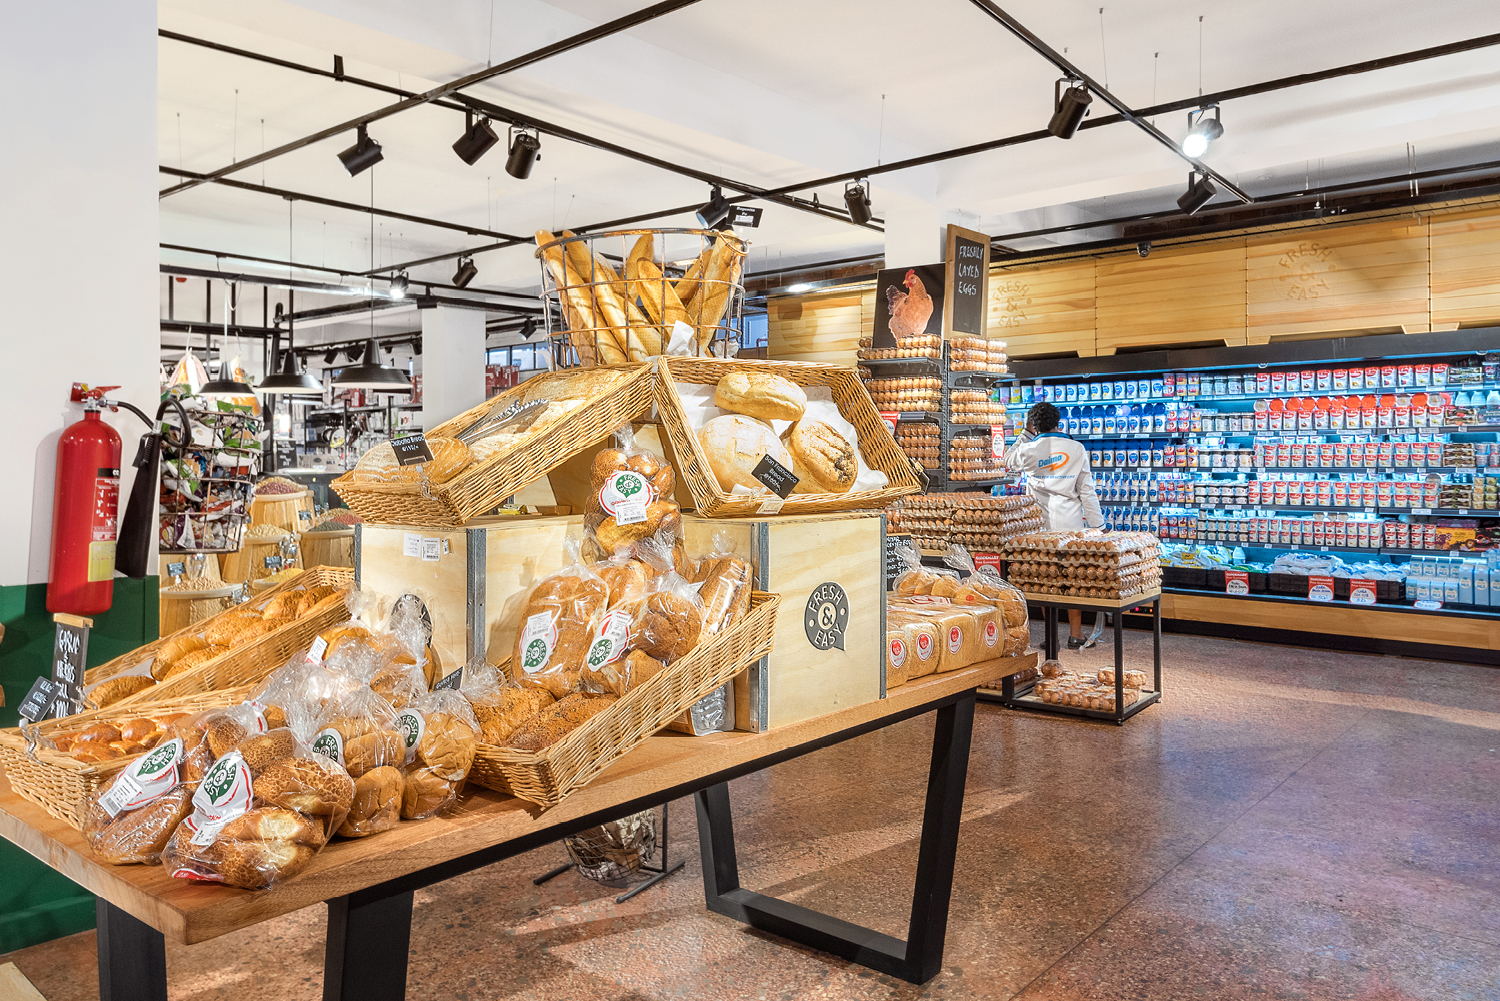 nicely stocked bakery products